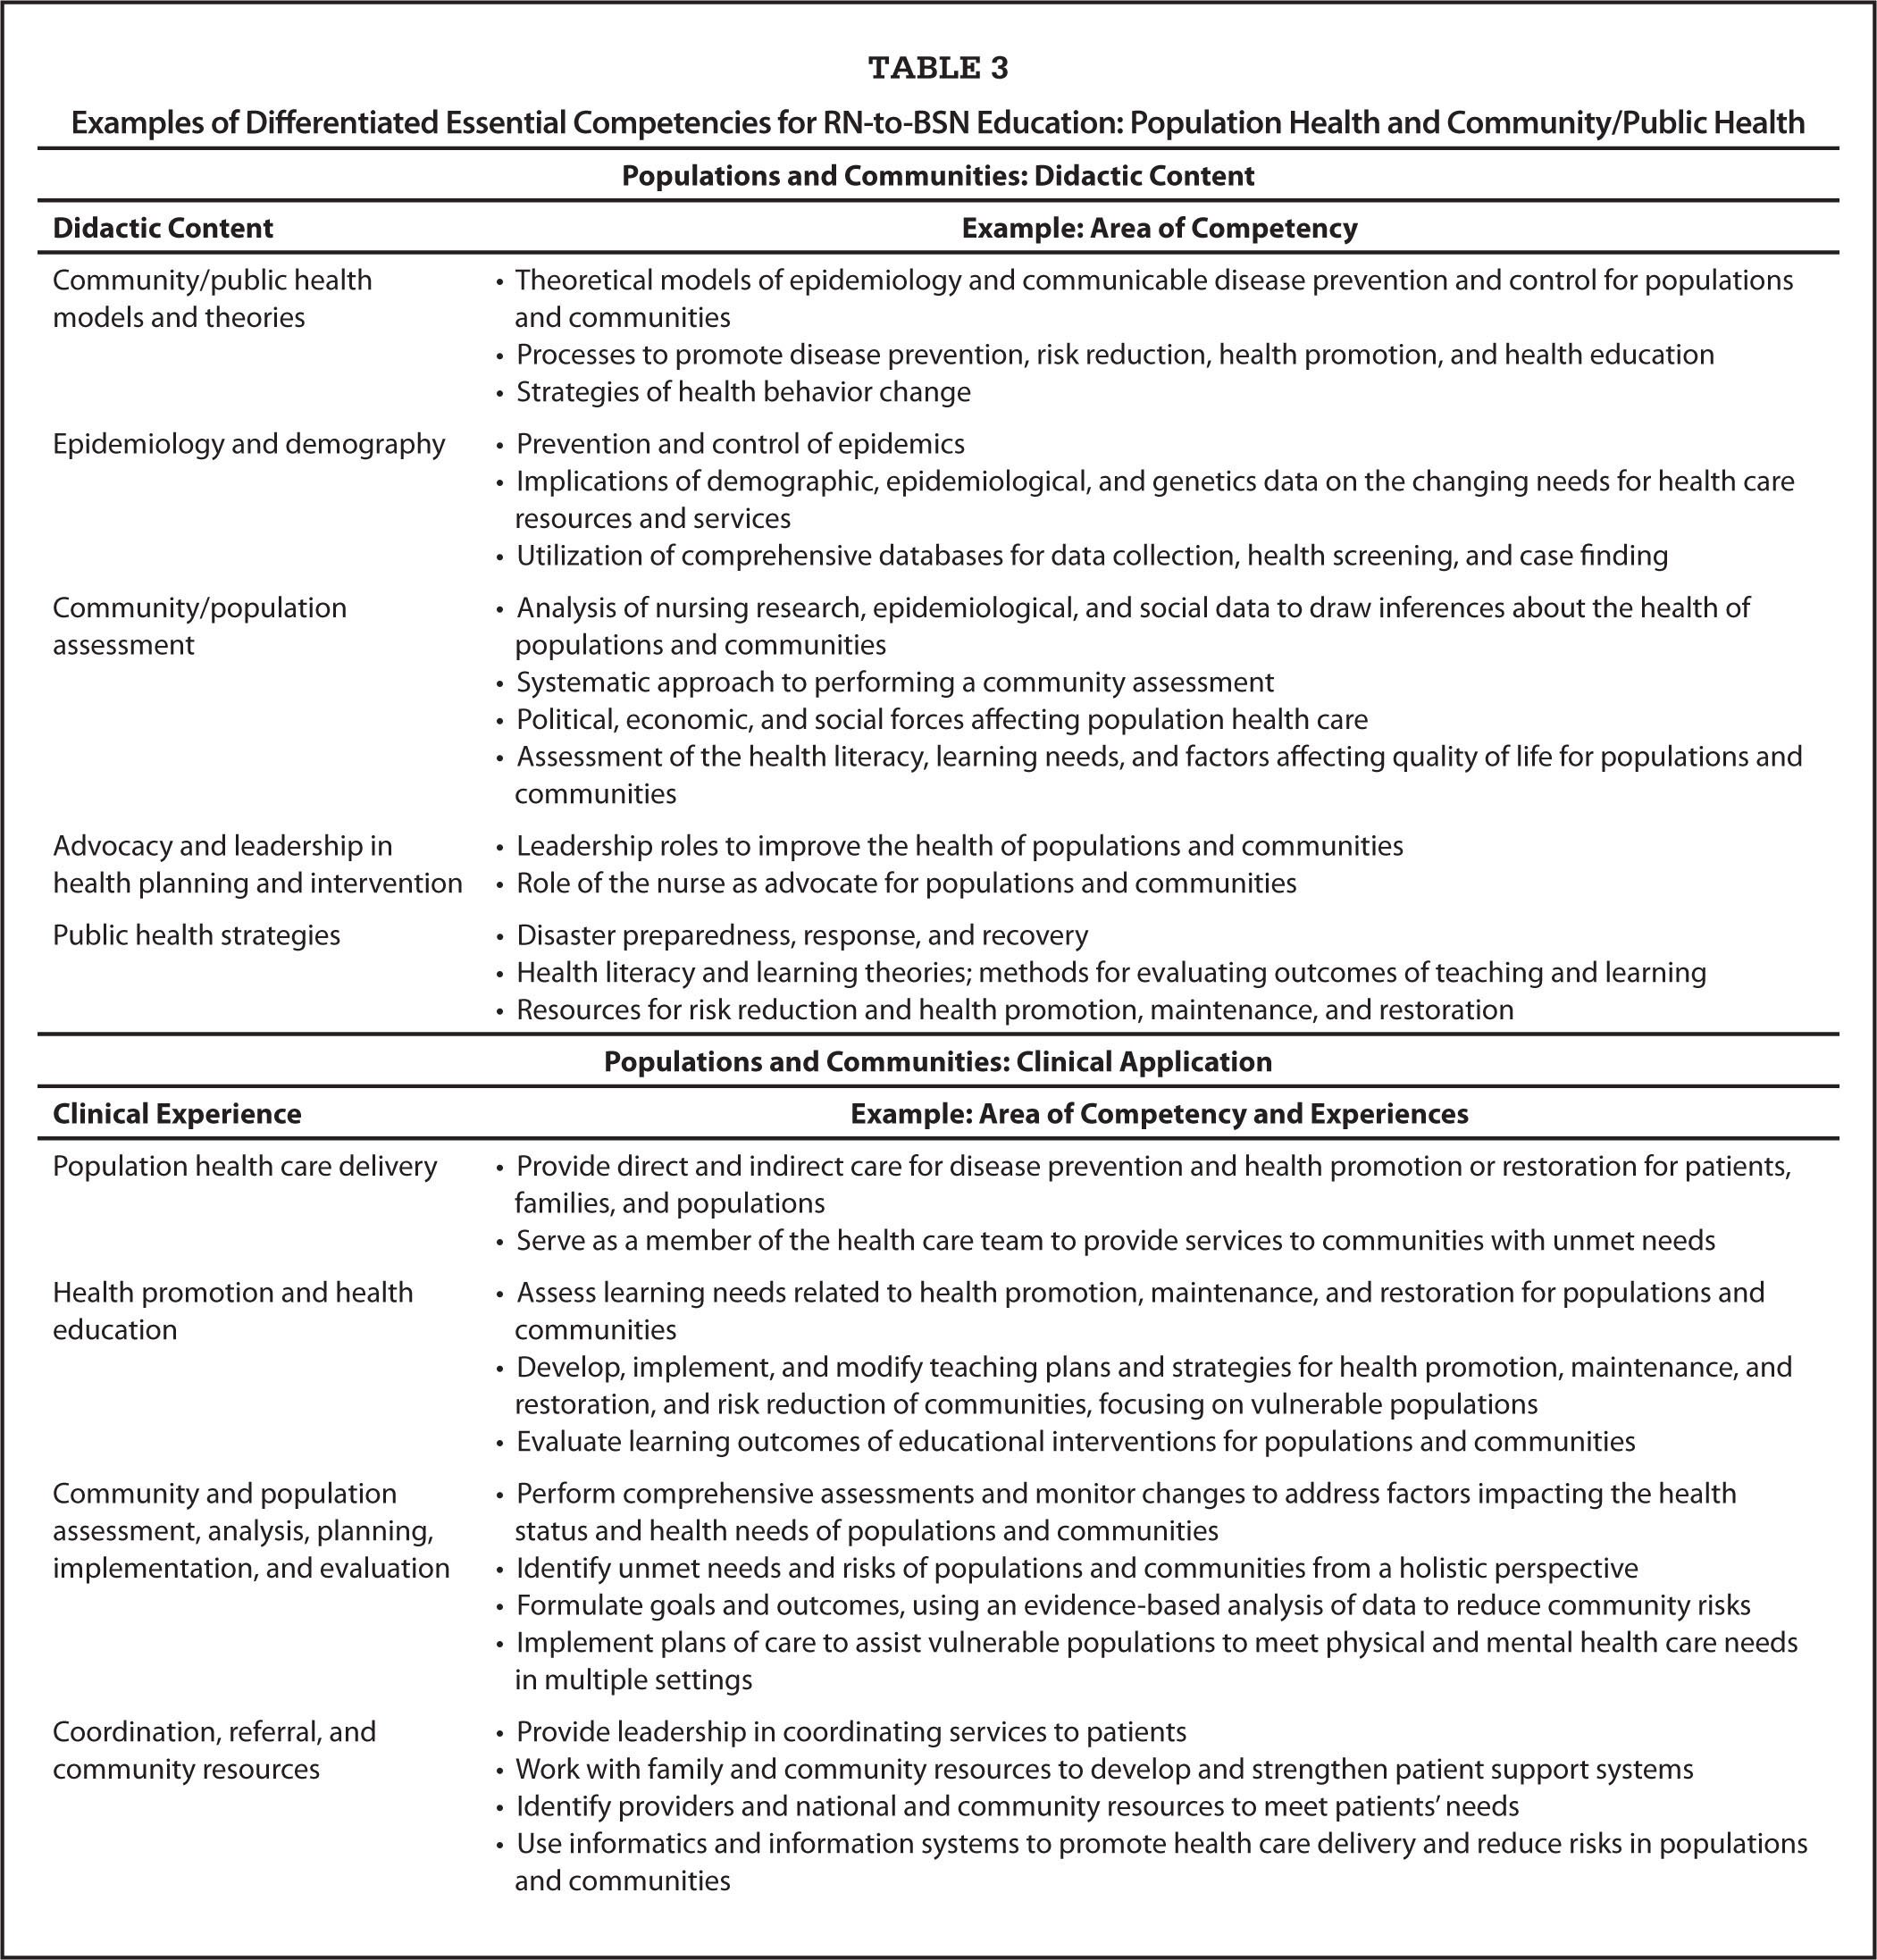 Examples of Differentiated Essential Competencies for RN-to-BSN Education: Population Health and Community/Public Health